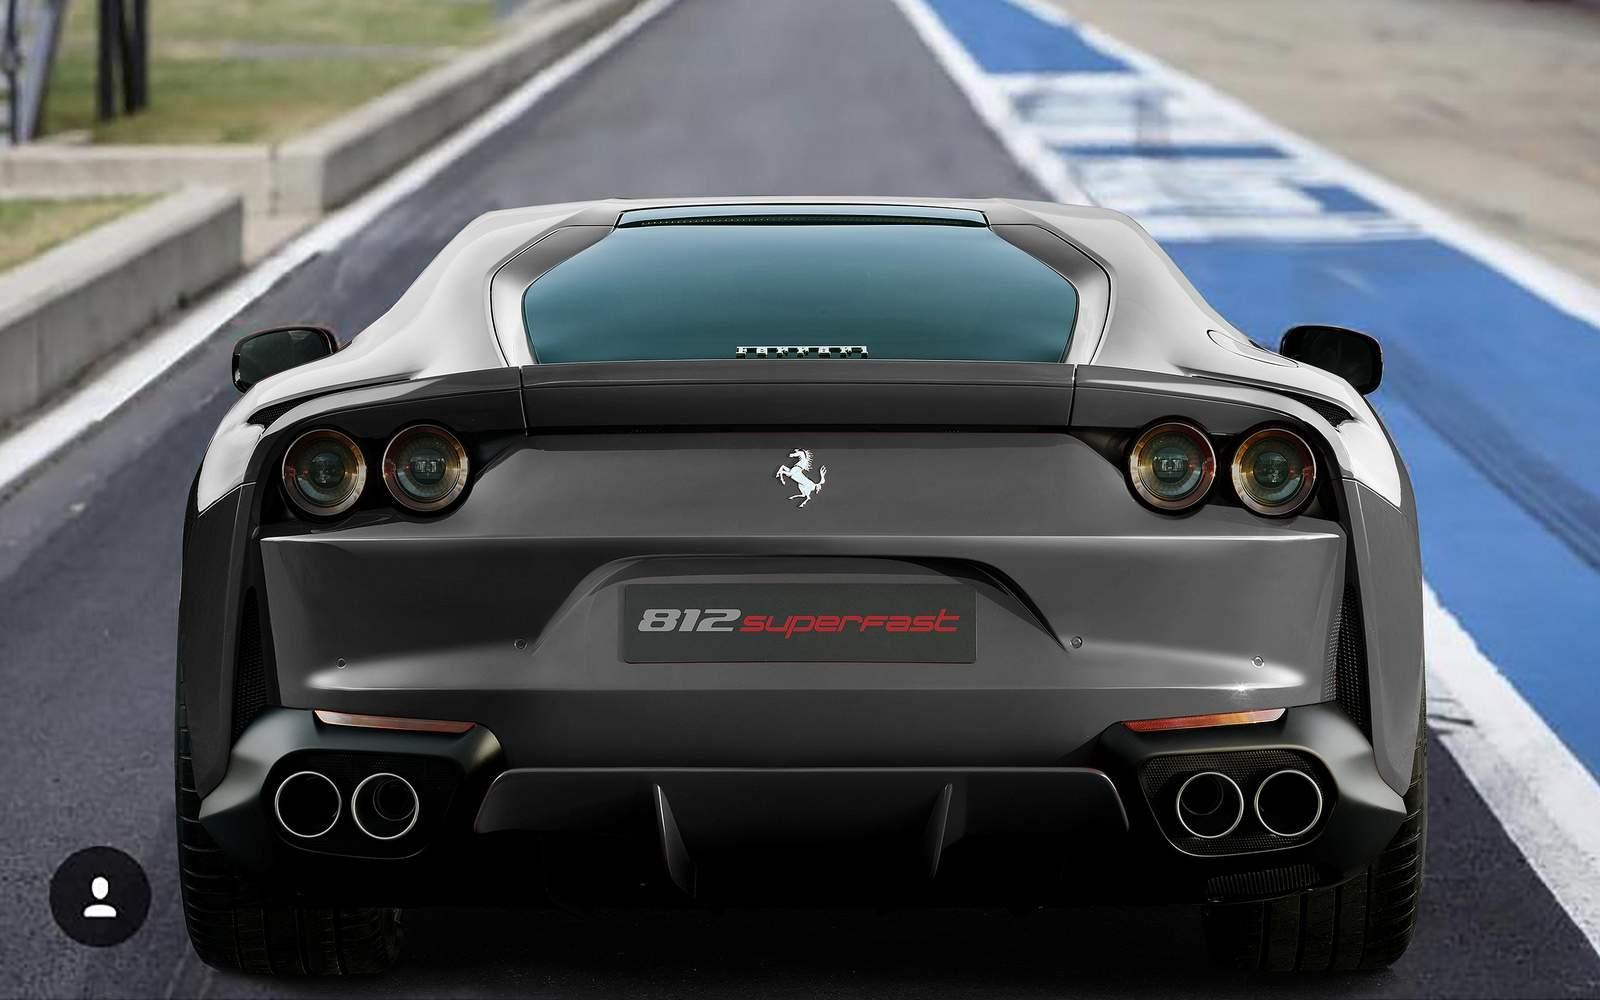 Ferrari 812 Superfast laptimes, specs, performance data ...